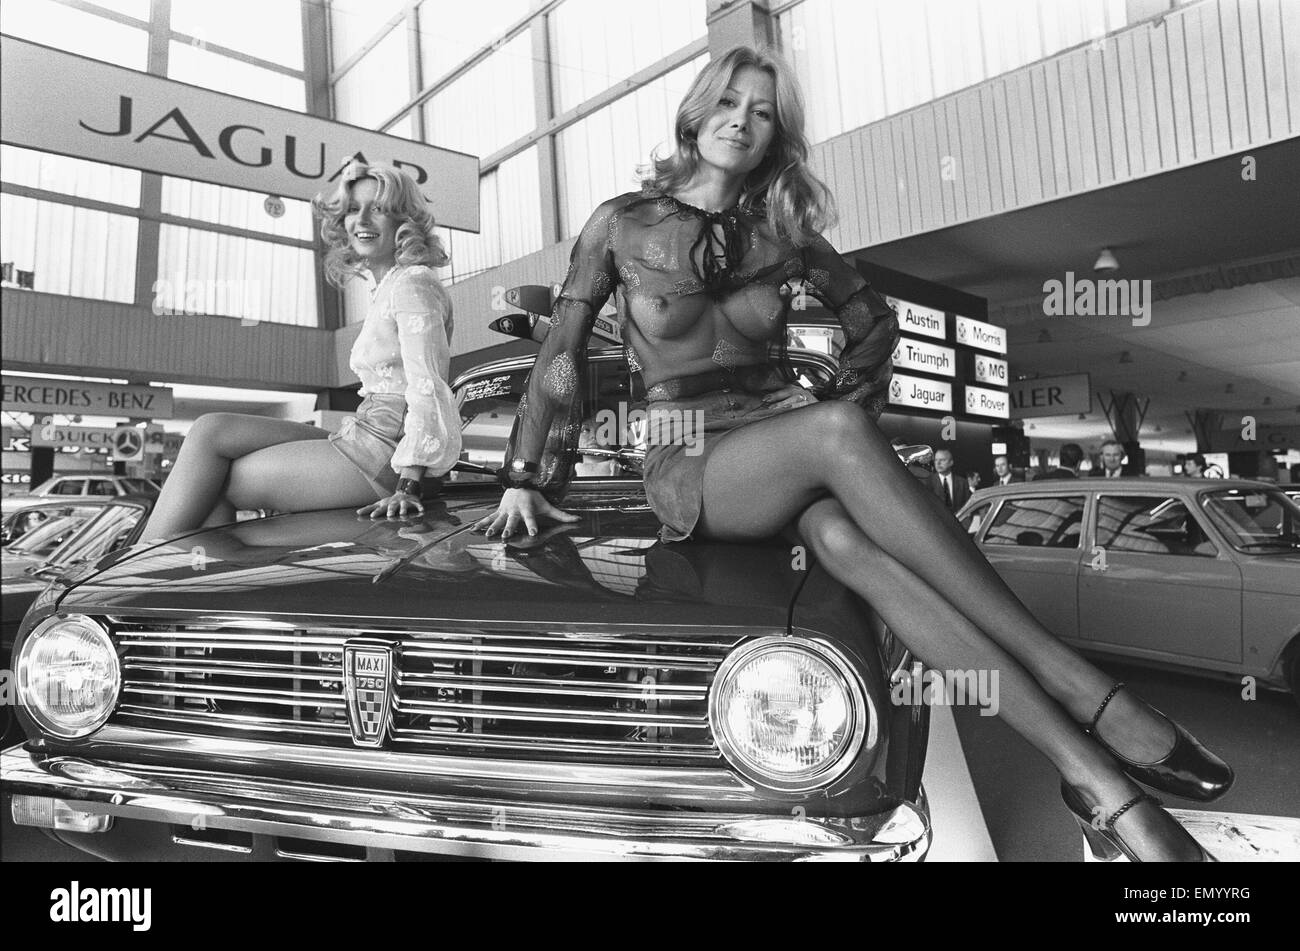 General scenes from the 1972 Paris motor show 6th October ...